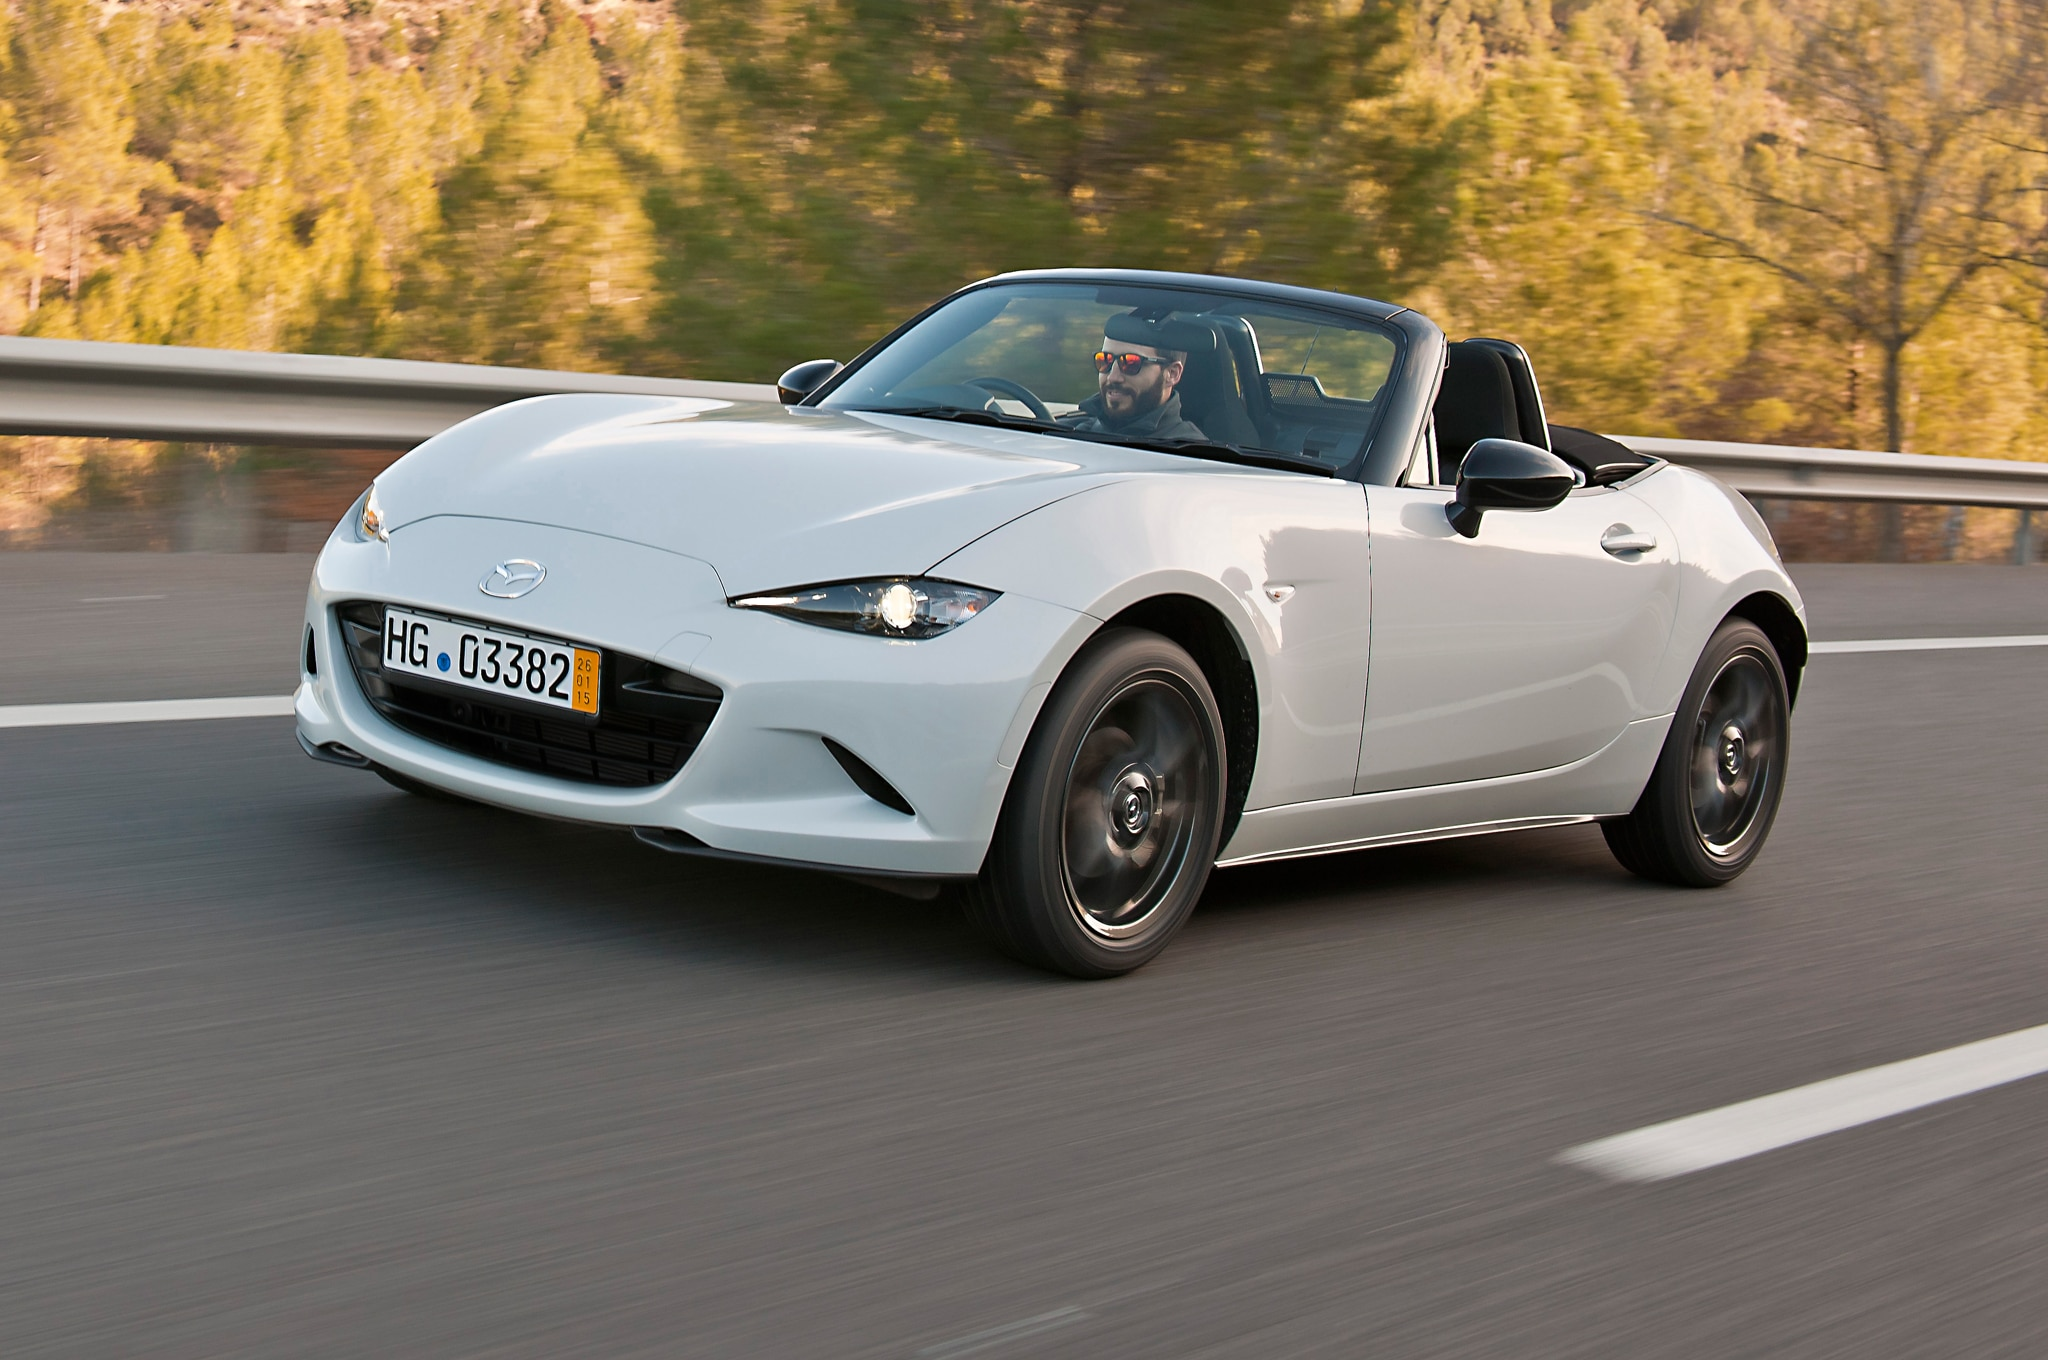 2016 Mazda MX 5 Miata Right Hand Drive Front Side View Lights On In White